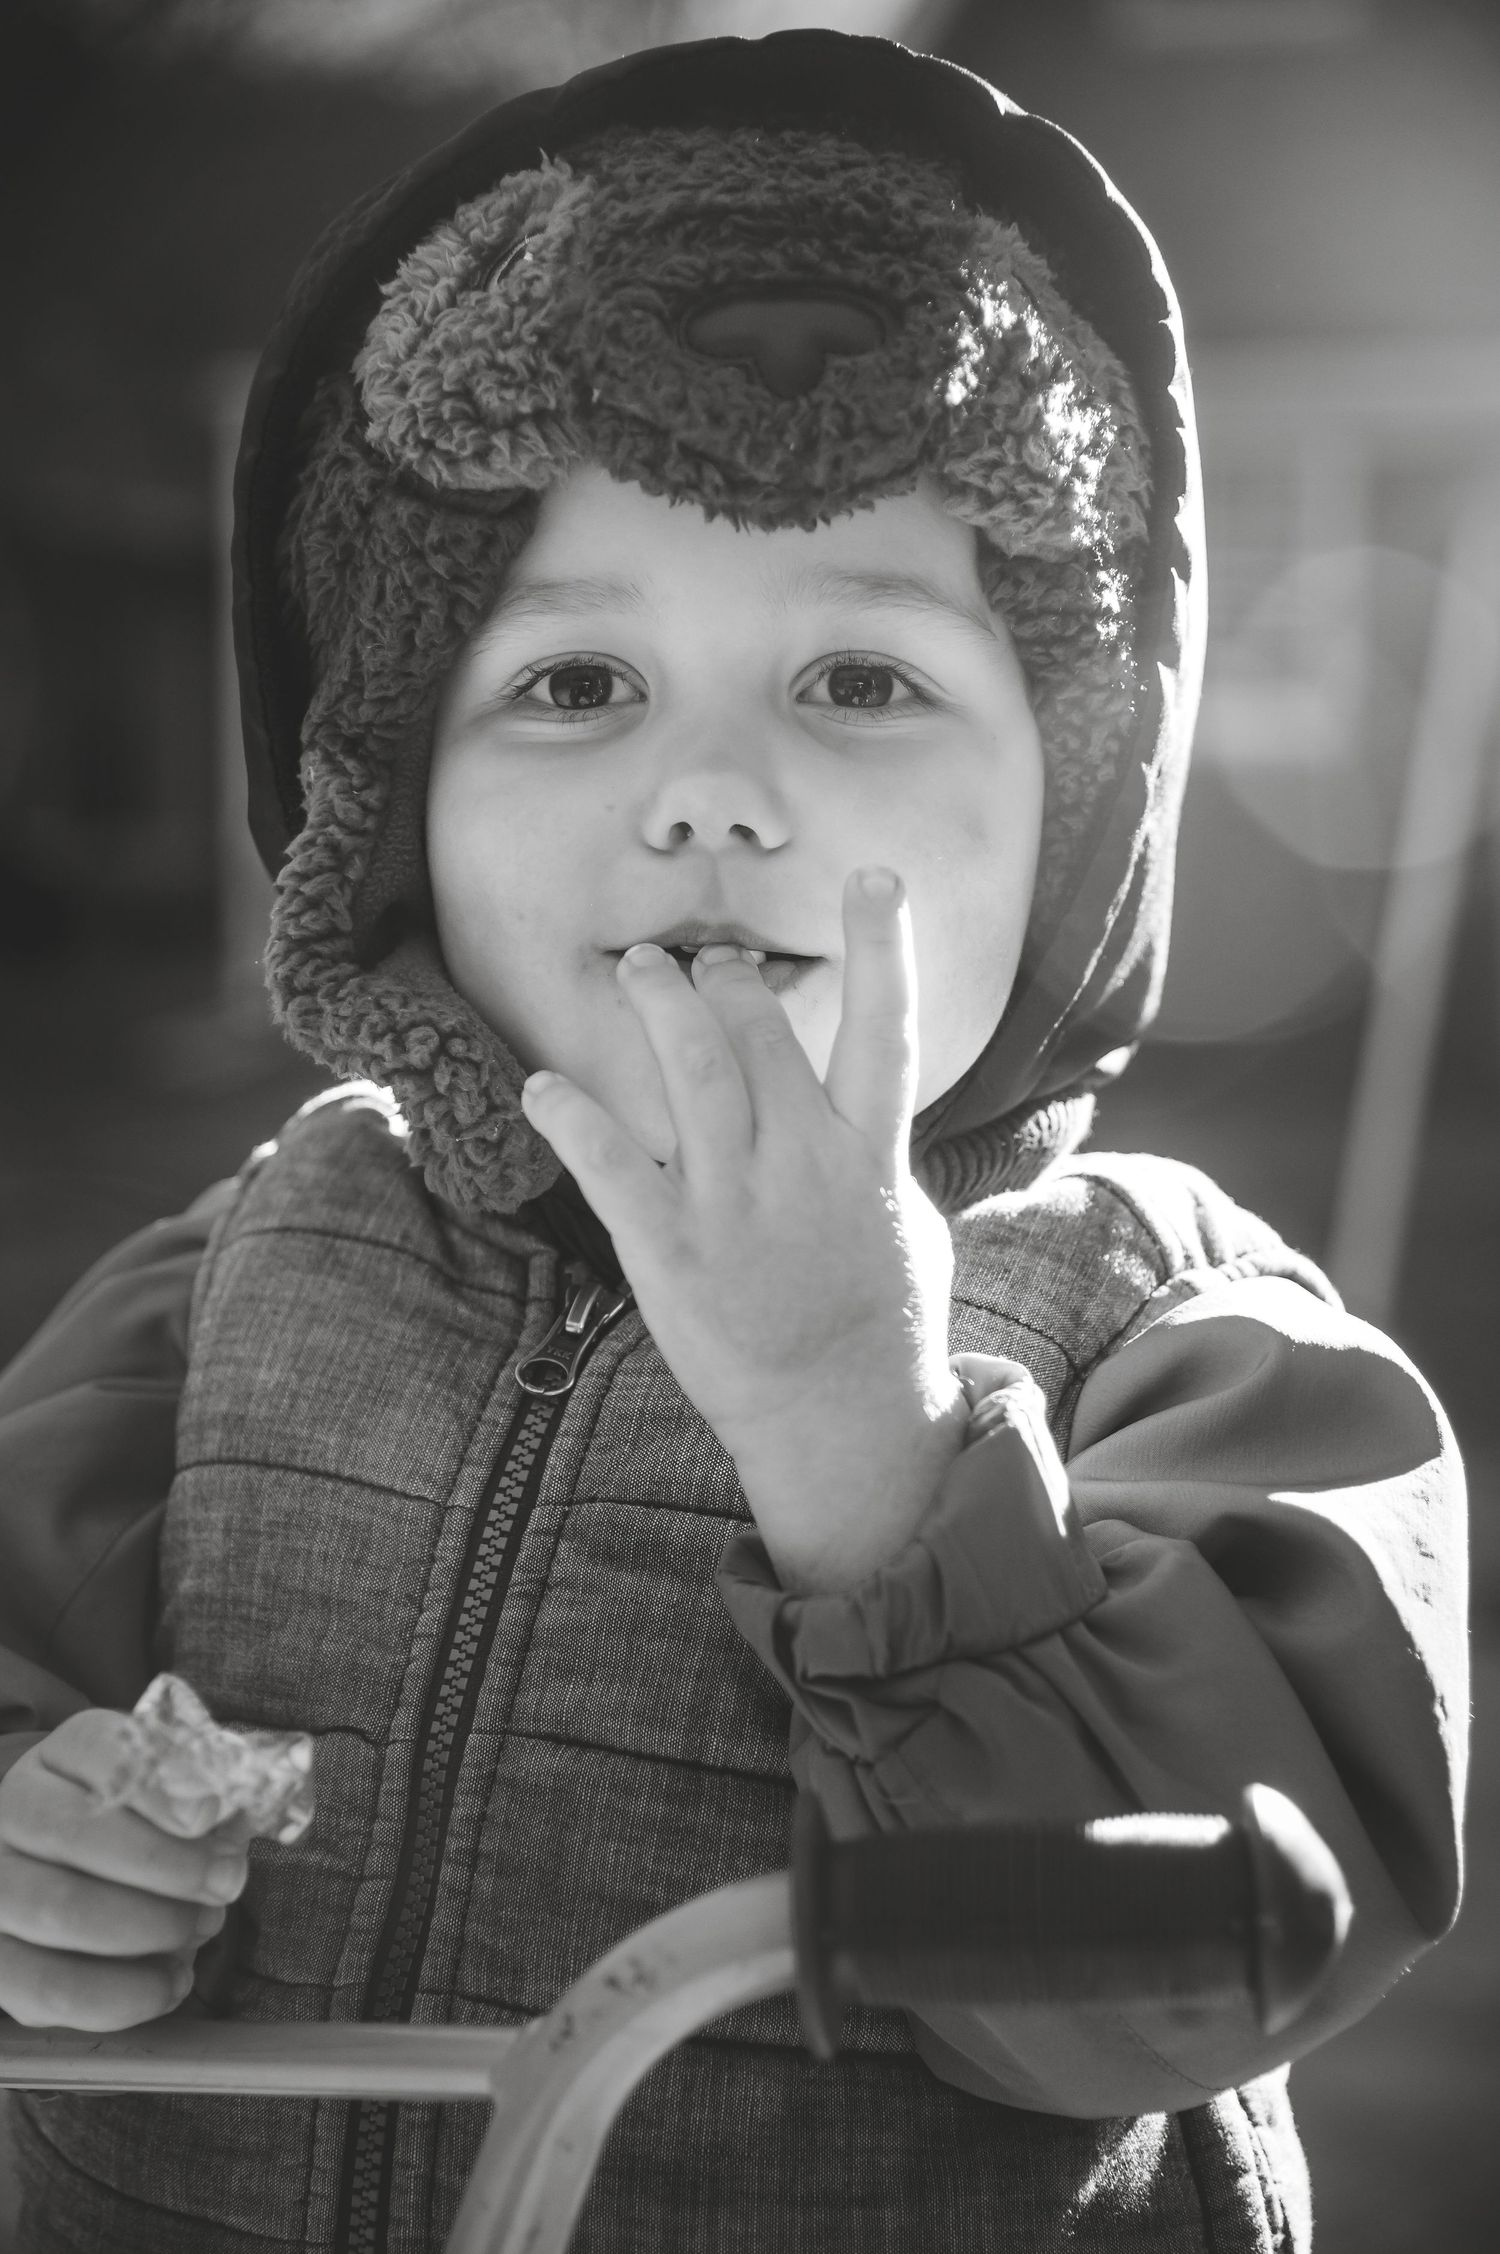 boy eating candy while looking at camera wearing hat and winter jacket while riding bike with flash illuminating behind